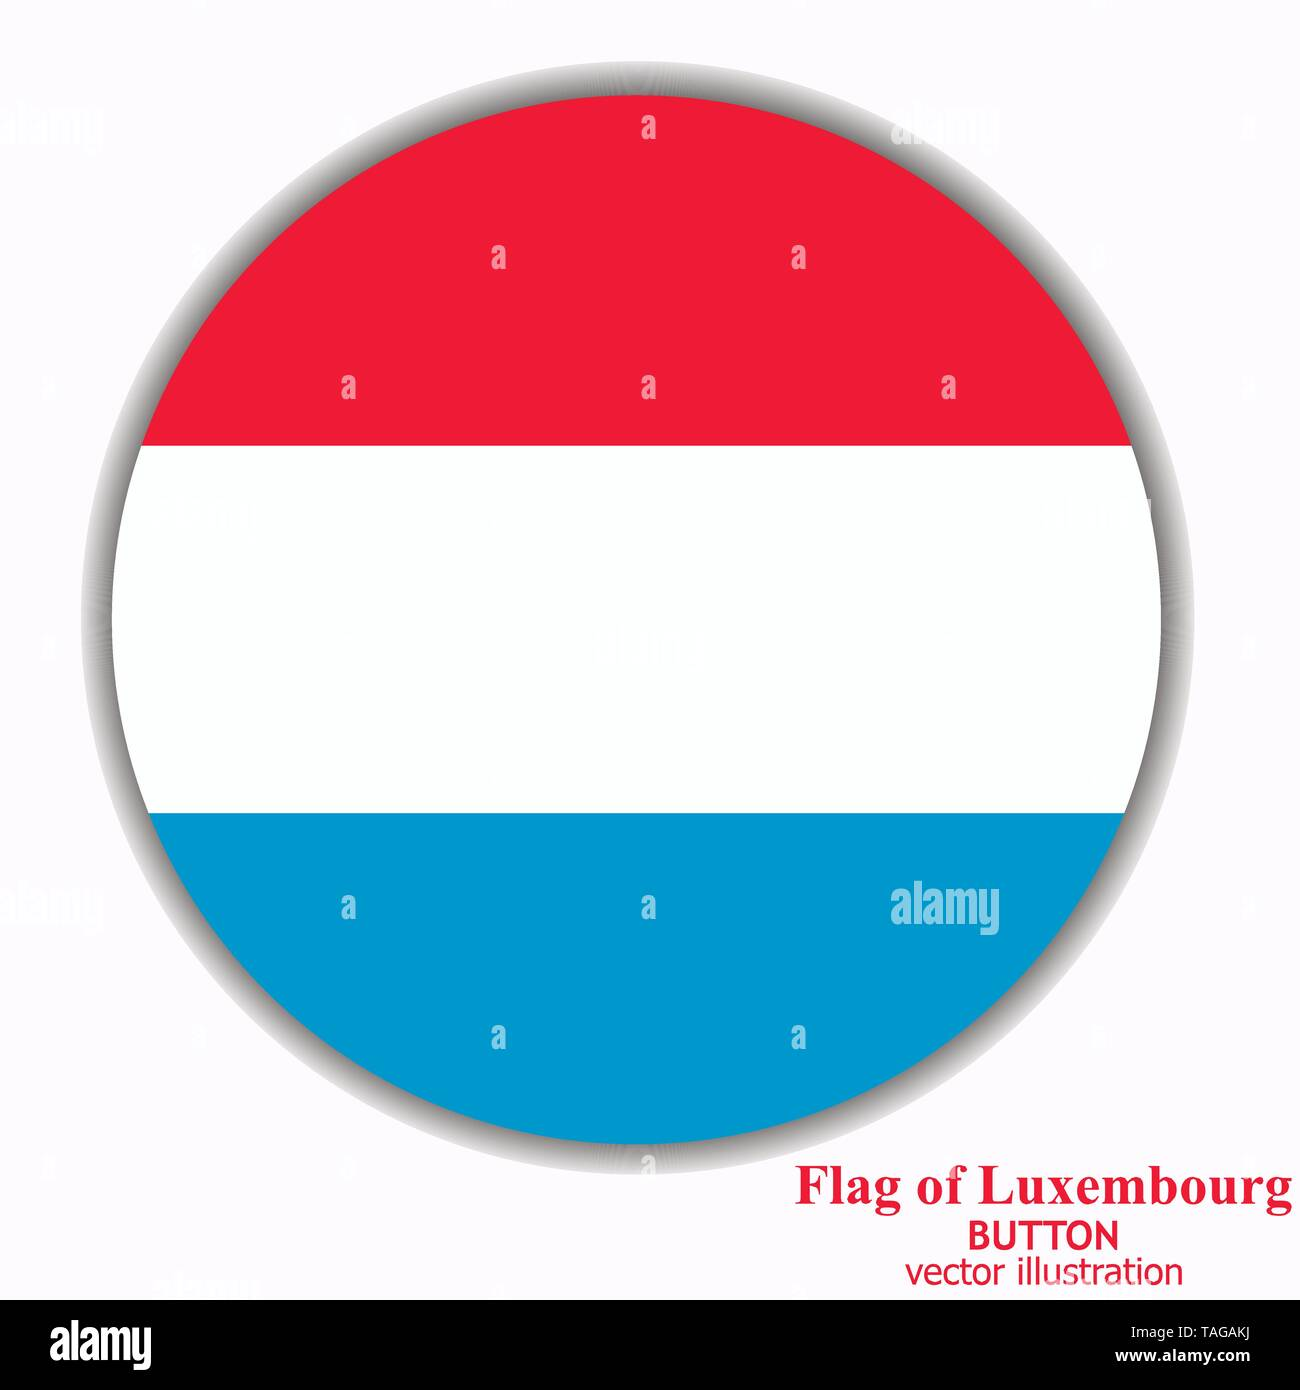 Button with flag of Luxembourg. Colorful illustration with flag for web design. Illustration with white background. - Stock Image